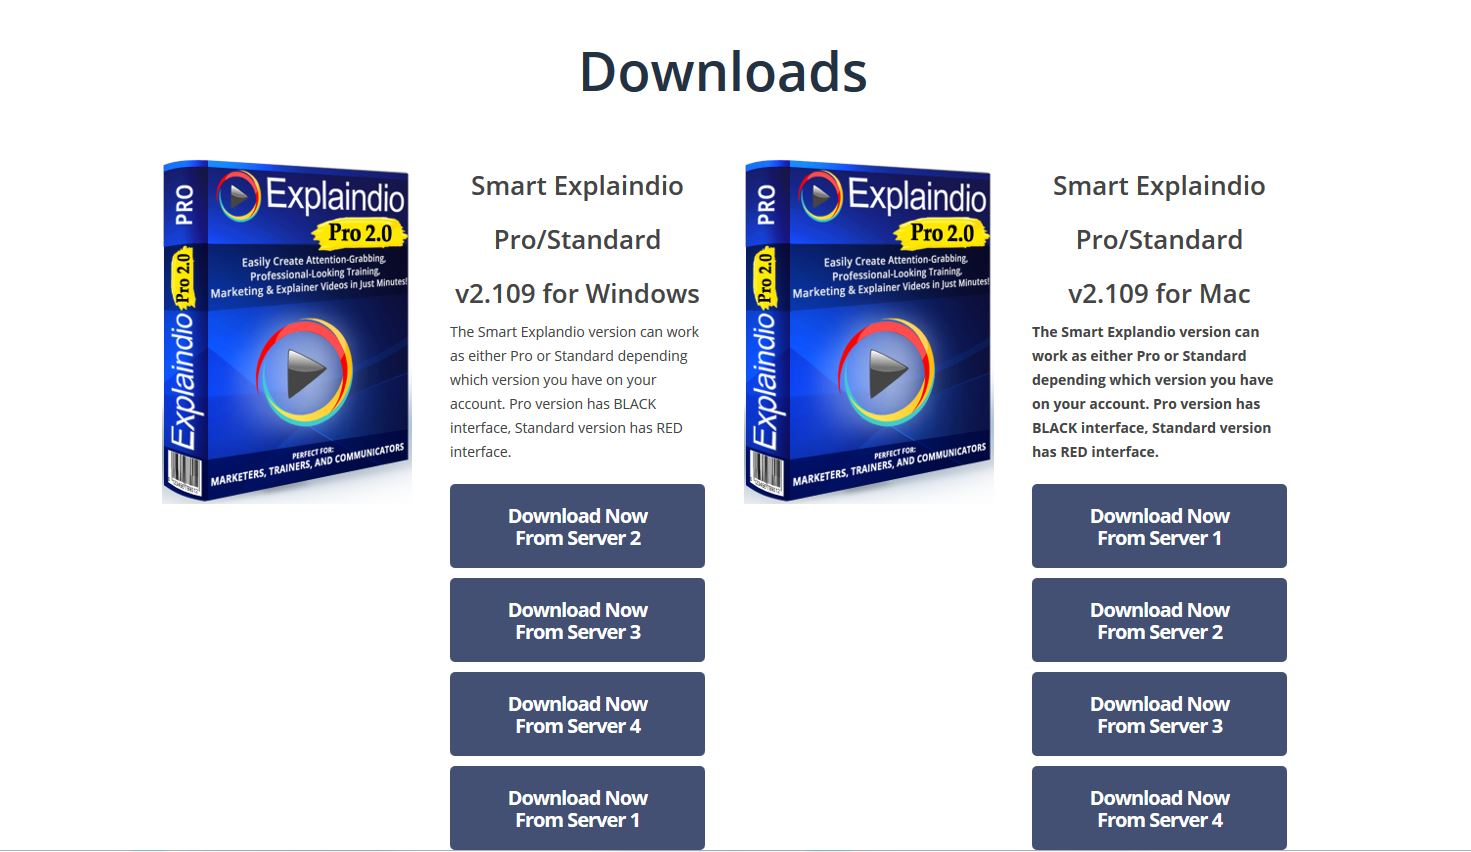 Explaindio 2.0 Download